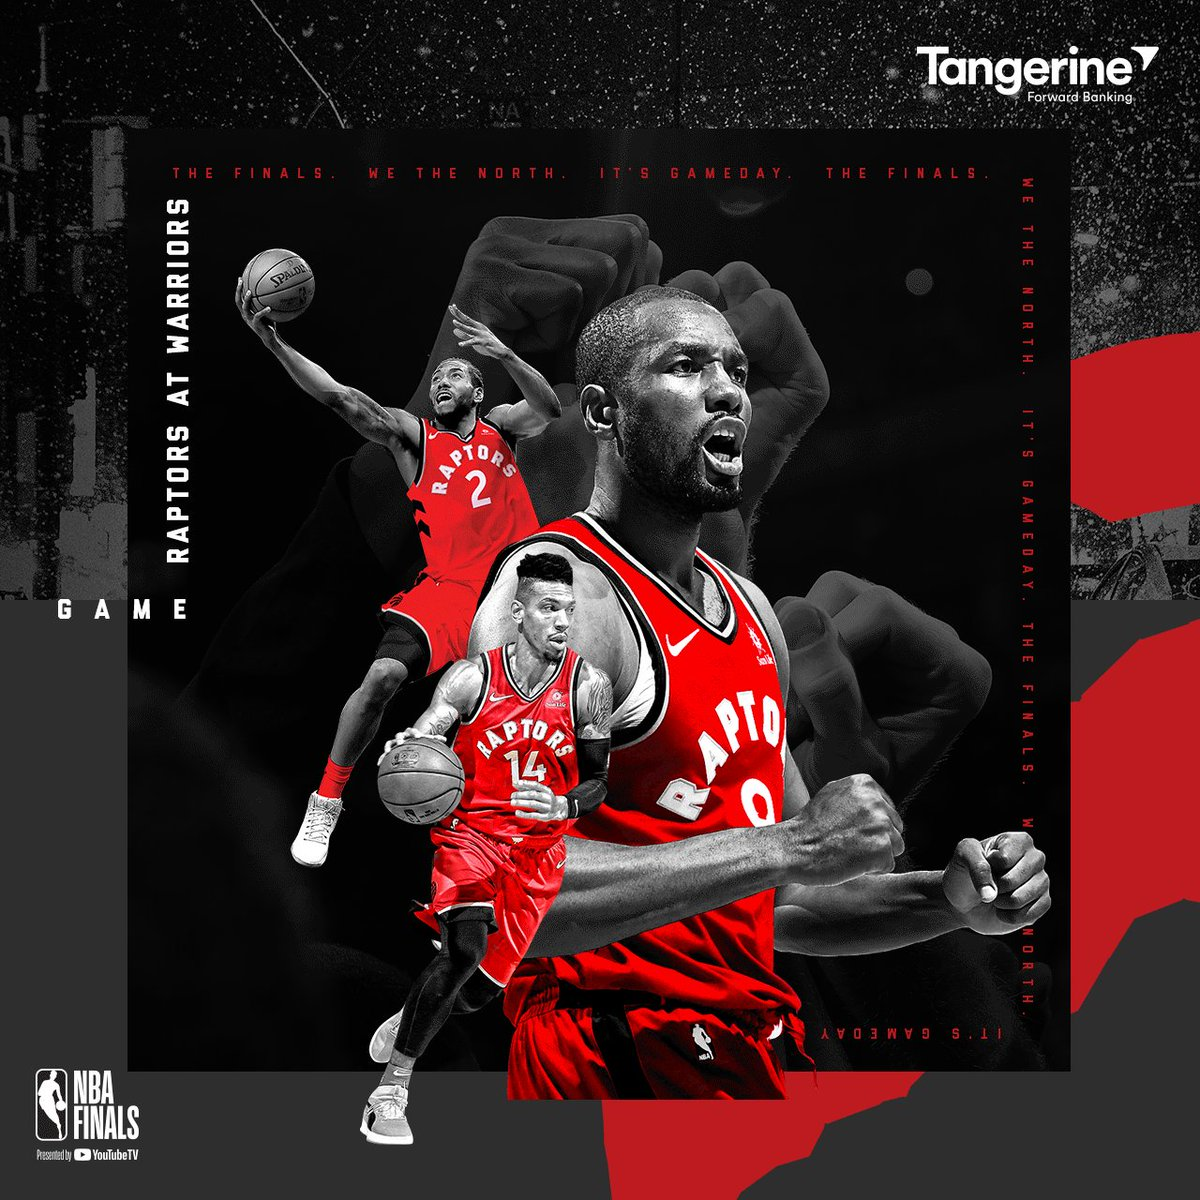 It's @TangerineHoops Raptors Game Day!  Another chance to make history. #WeTheNorth  Game 6 Preview » https://t.co/ooipl6kHUM